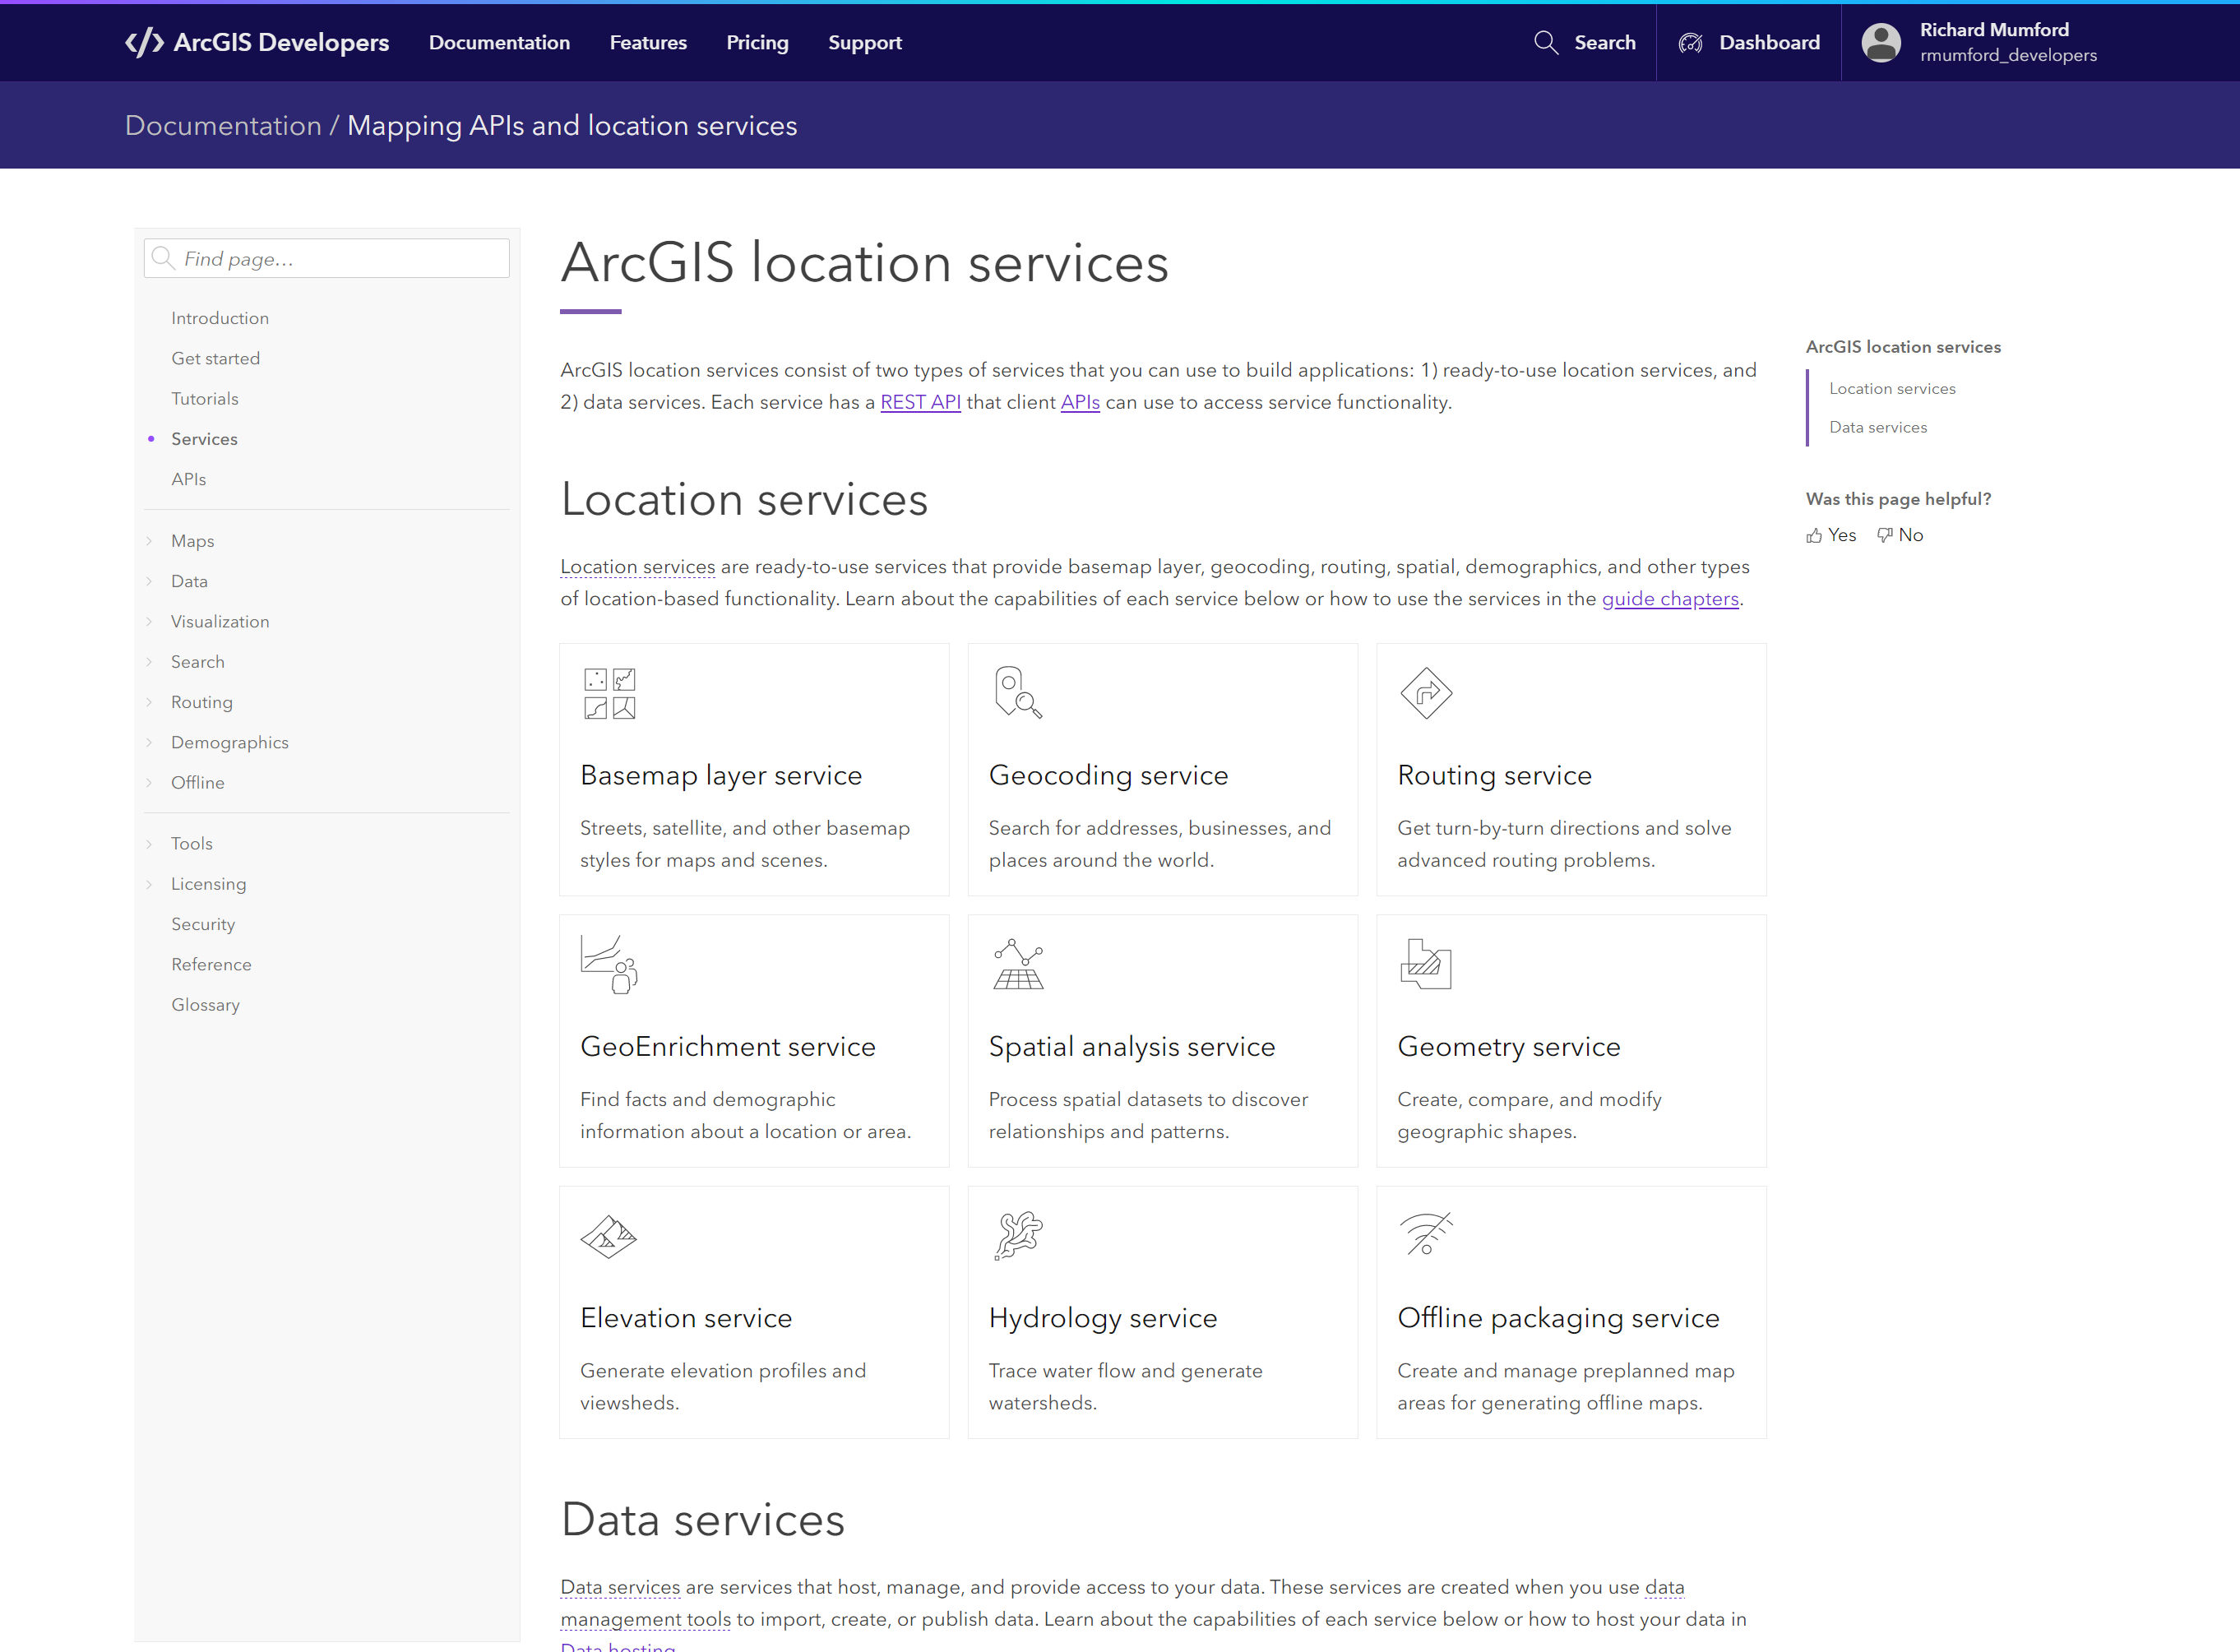 Mapping APIs and services page